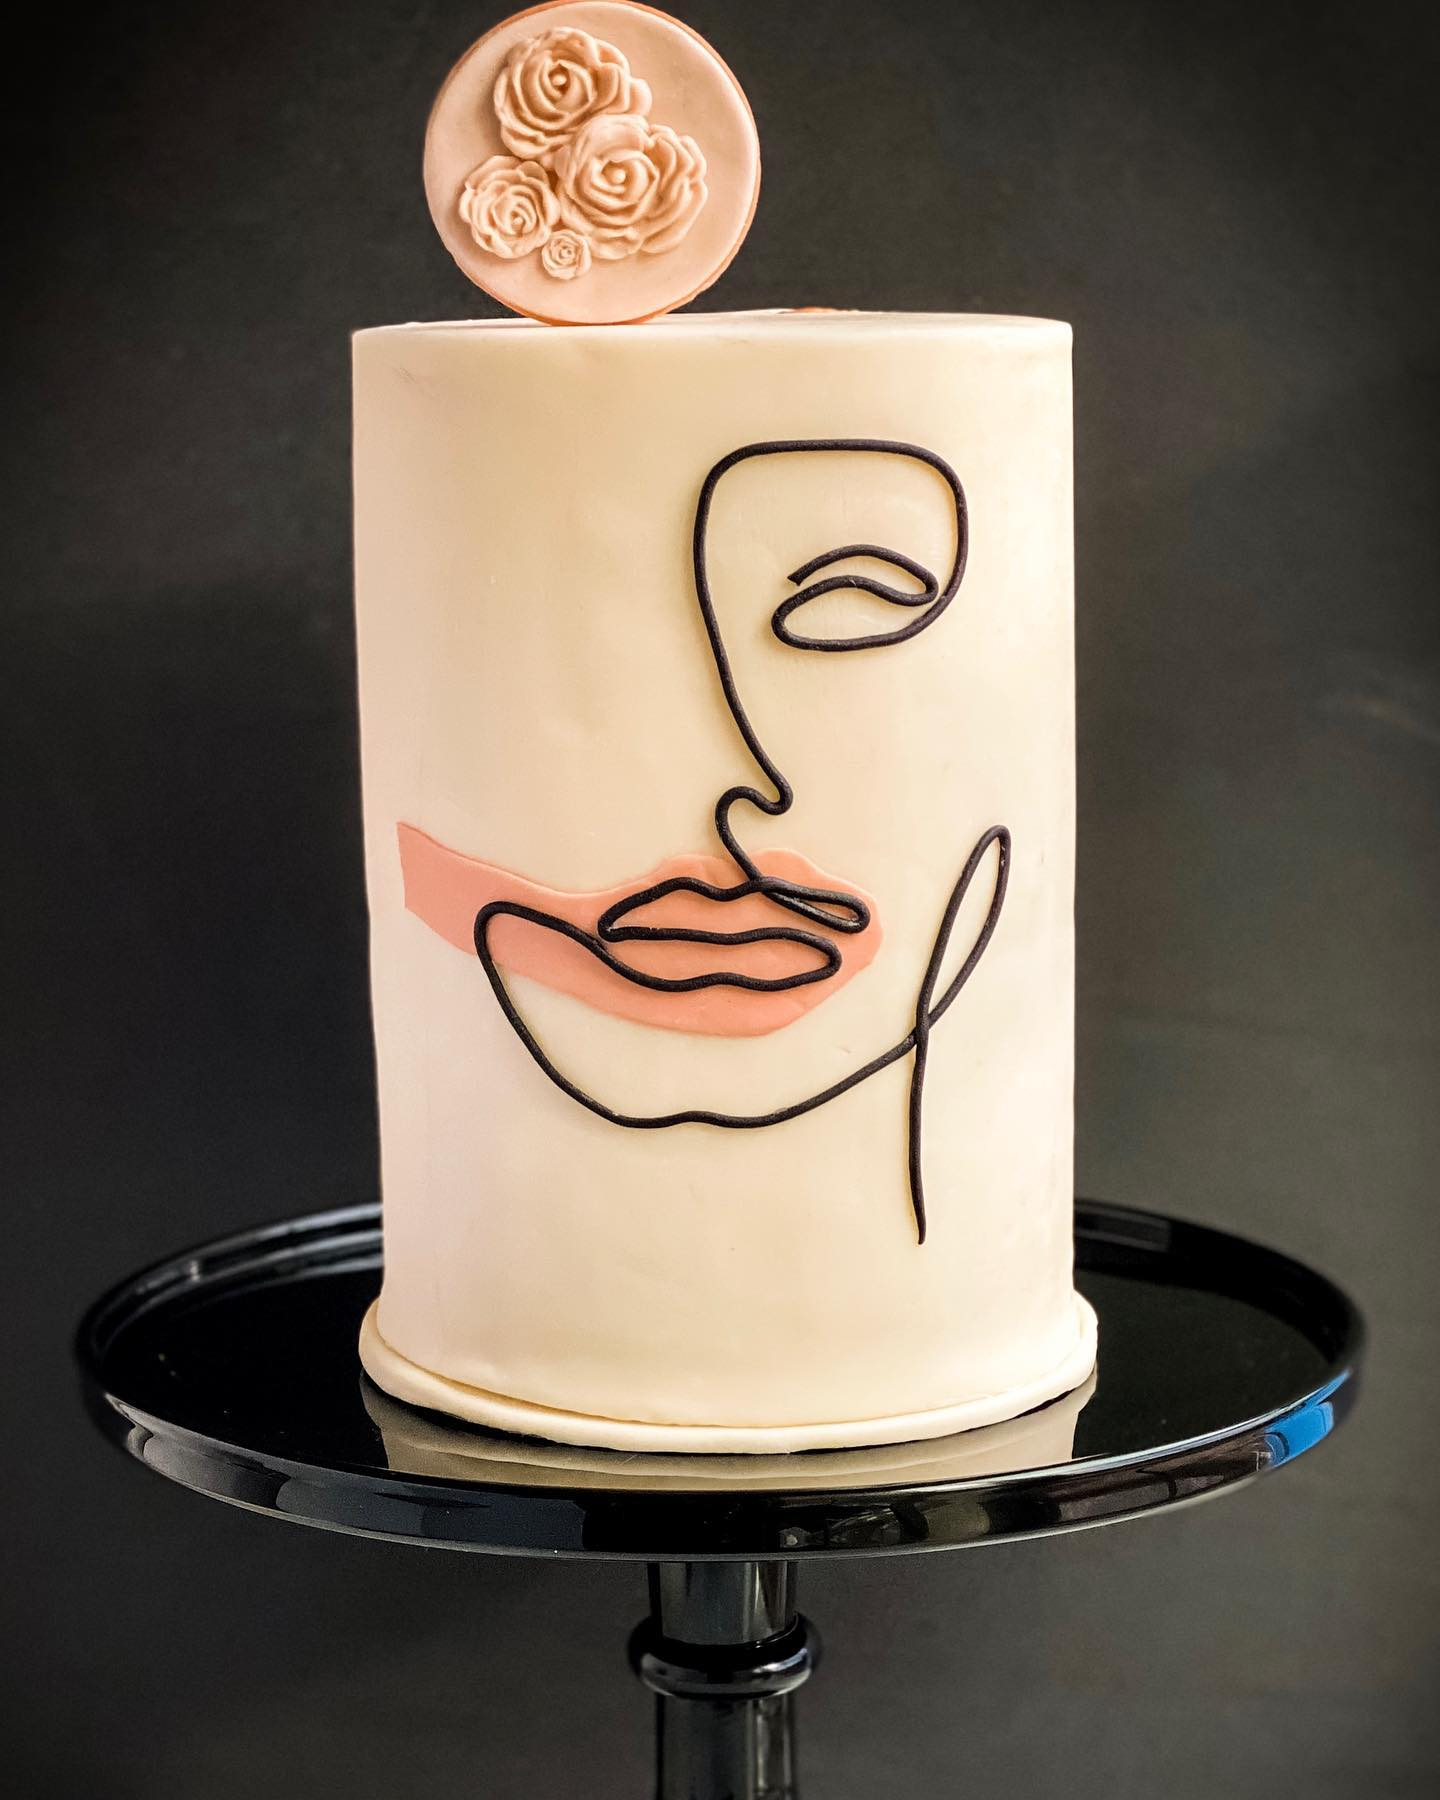 One line drawing cake -lady